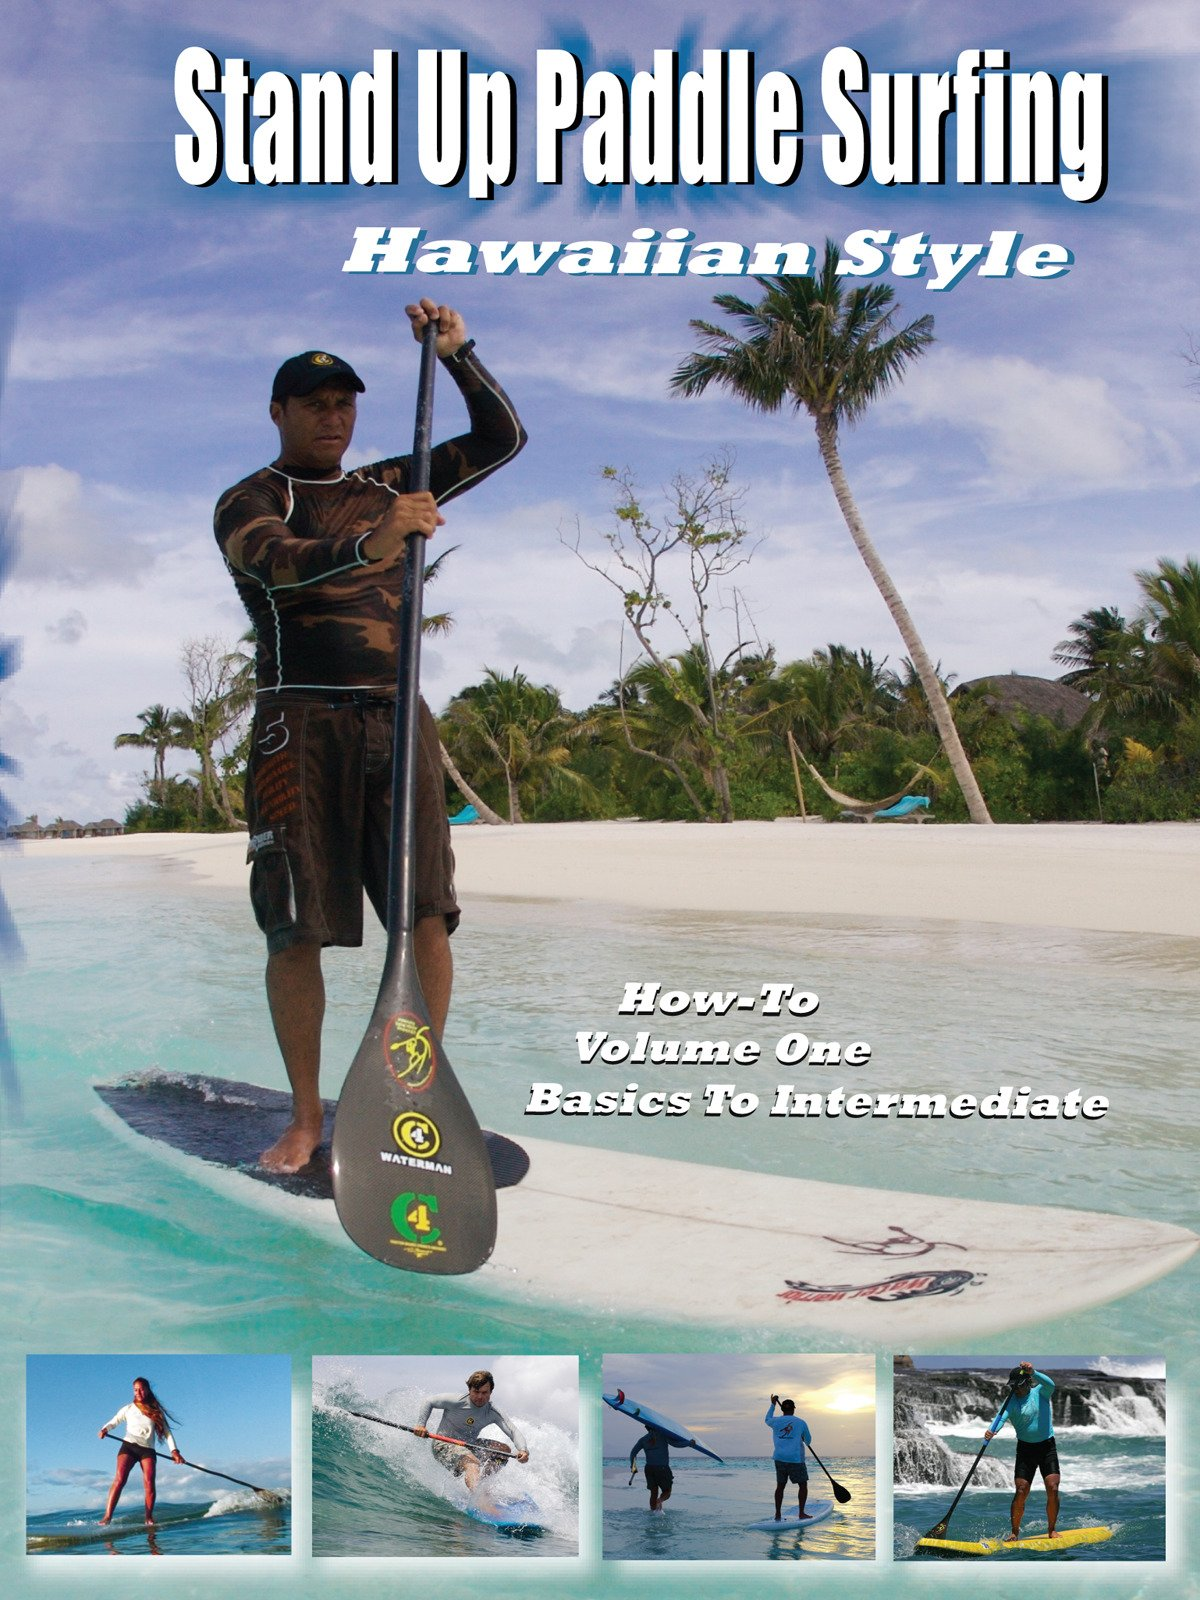 Stand Up Paddle Surfing Hawaiian